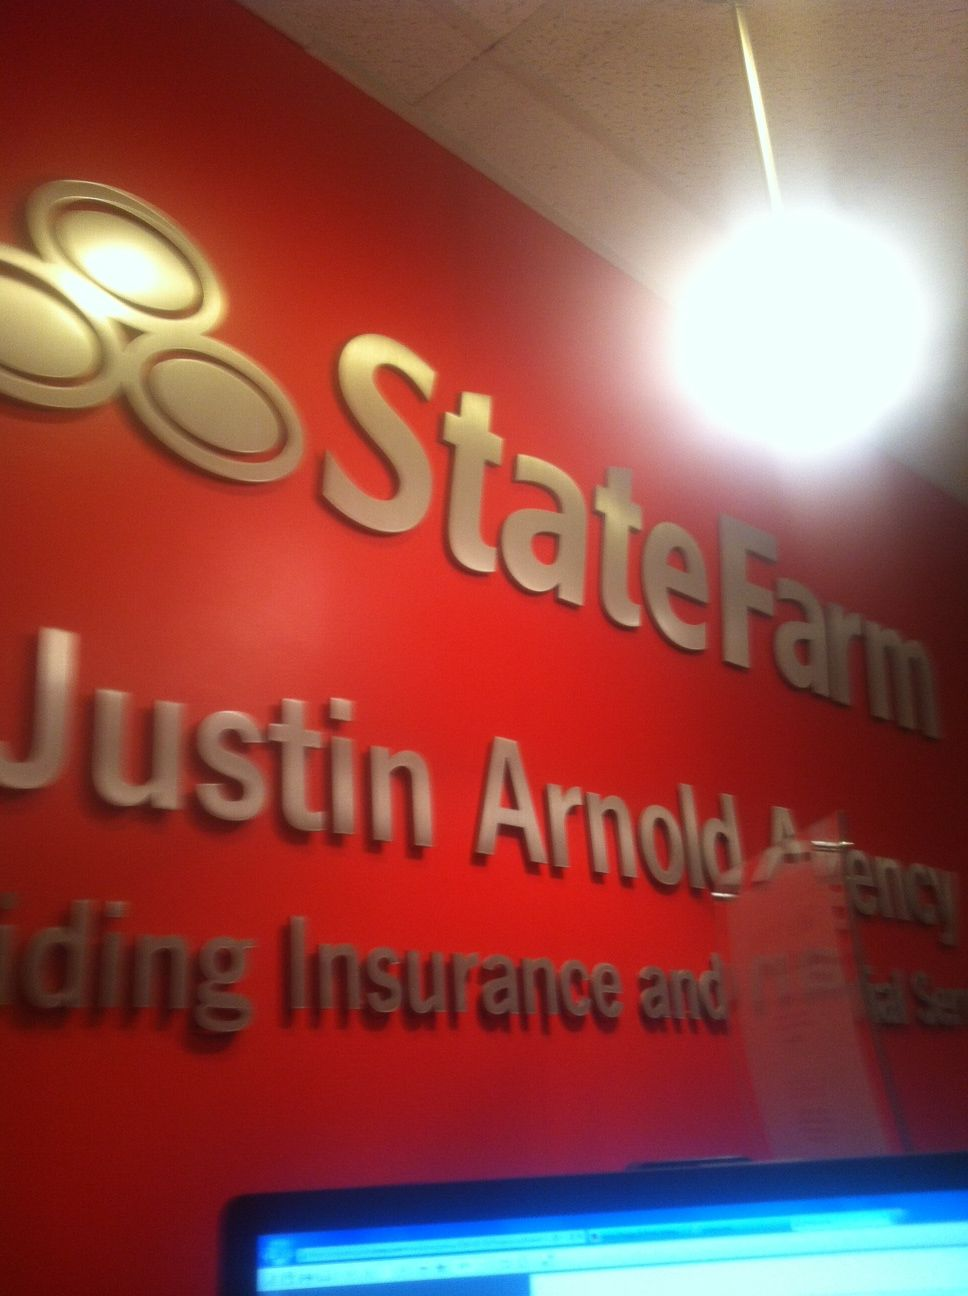 State Farm Agency In Bowie Maryland Justin Arnold Office State Farm Insurance State Farm Office State Farm